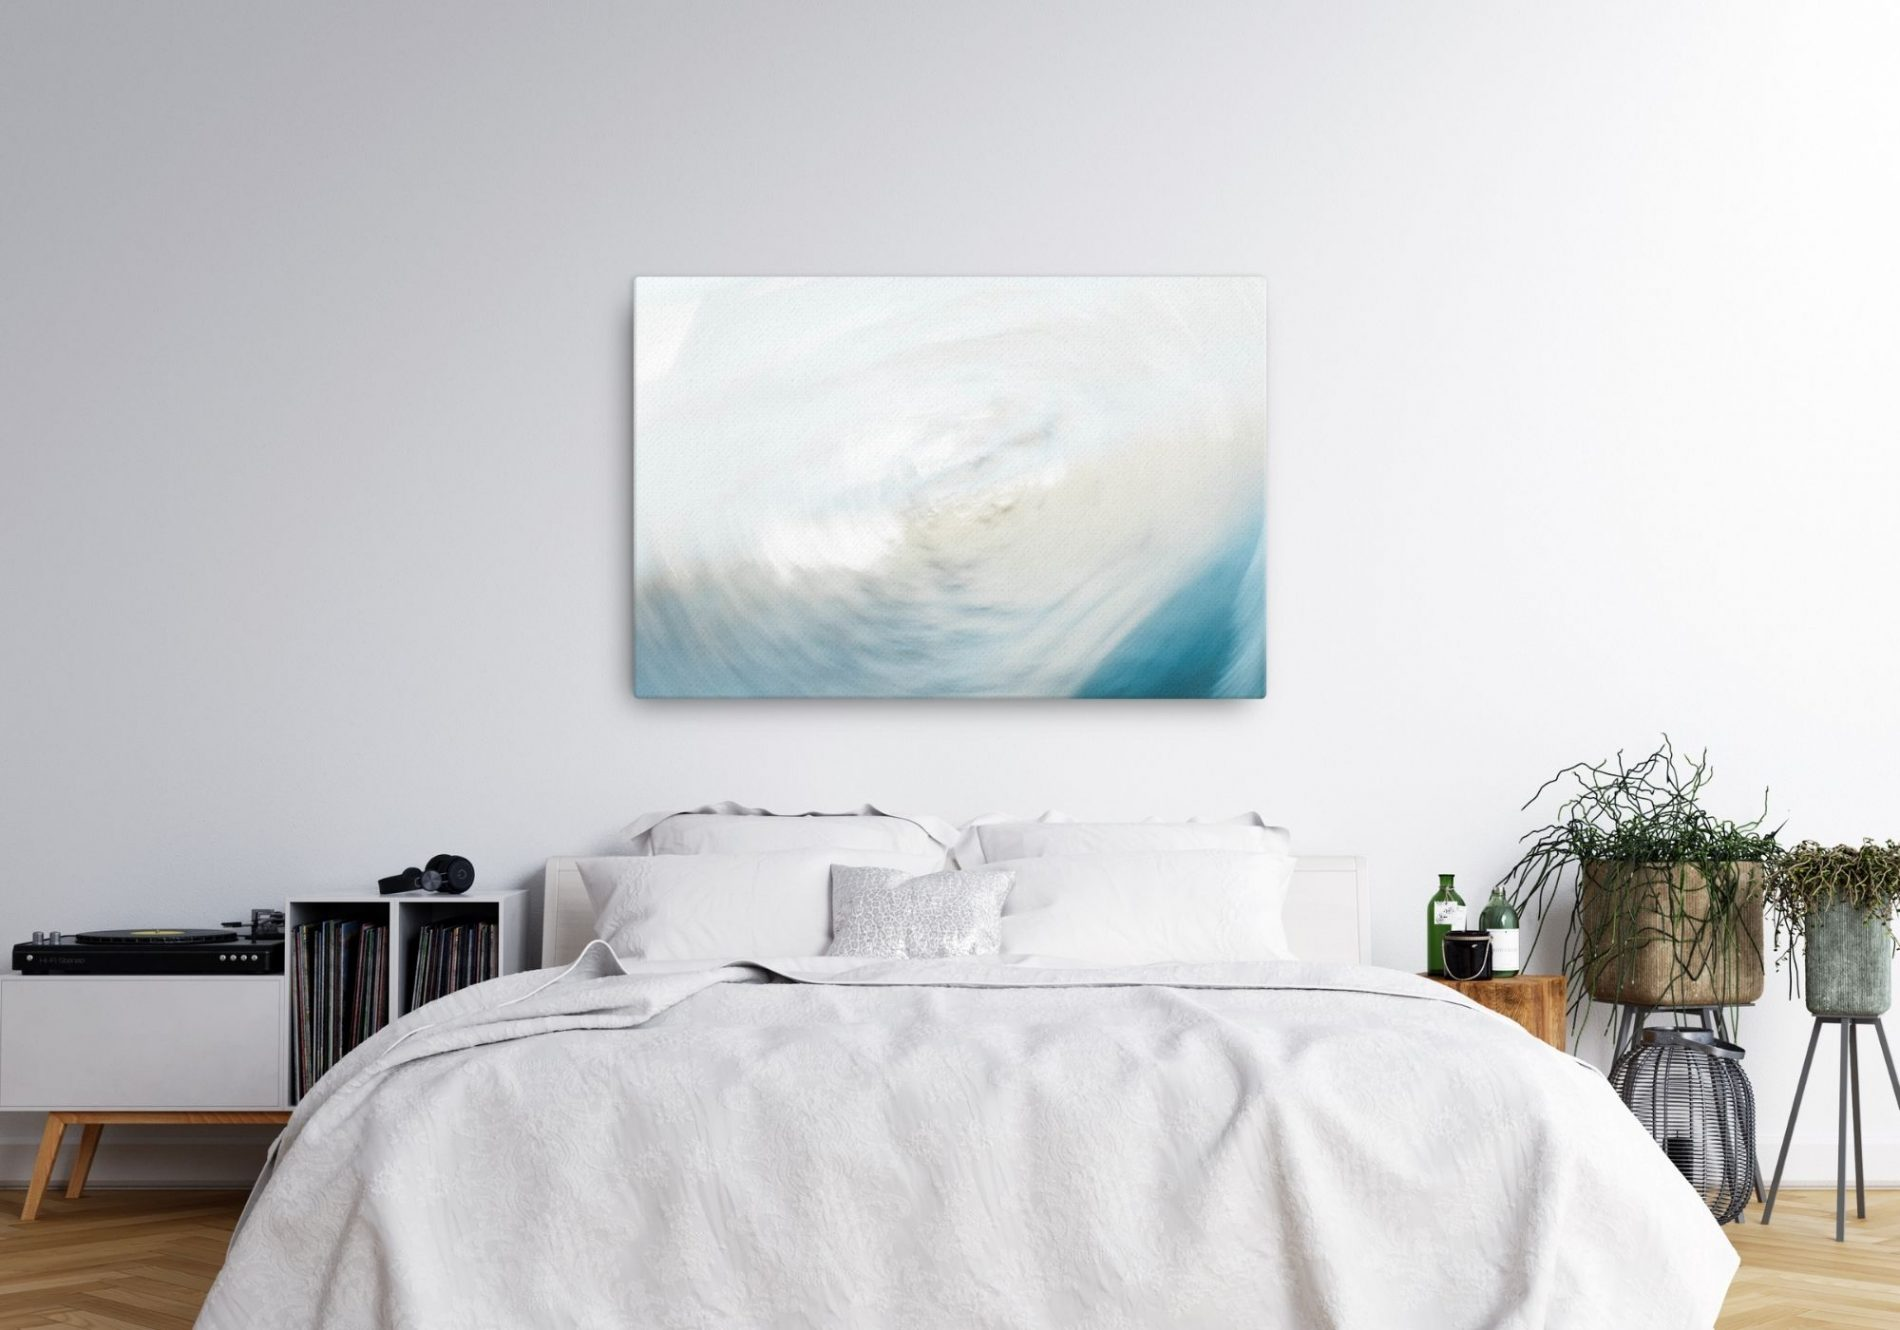 White and blue abstract canvas above bed in bedroom. Tidal Turn by photographer Rebecca Portsmouth (Margate Editions)